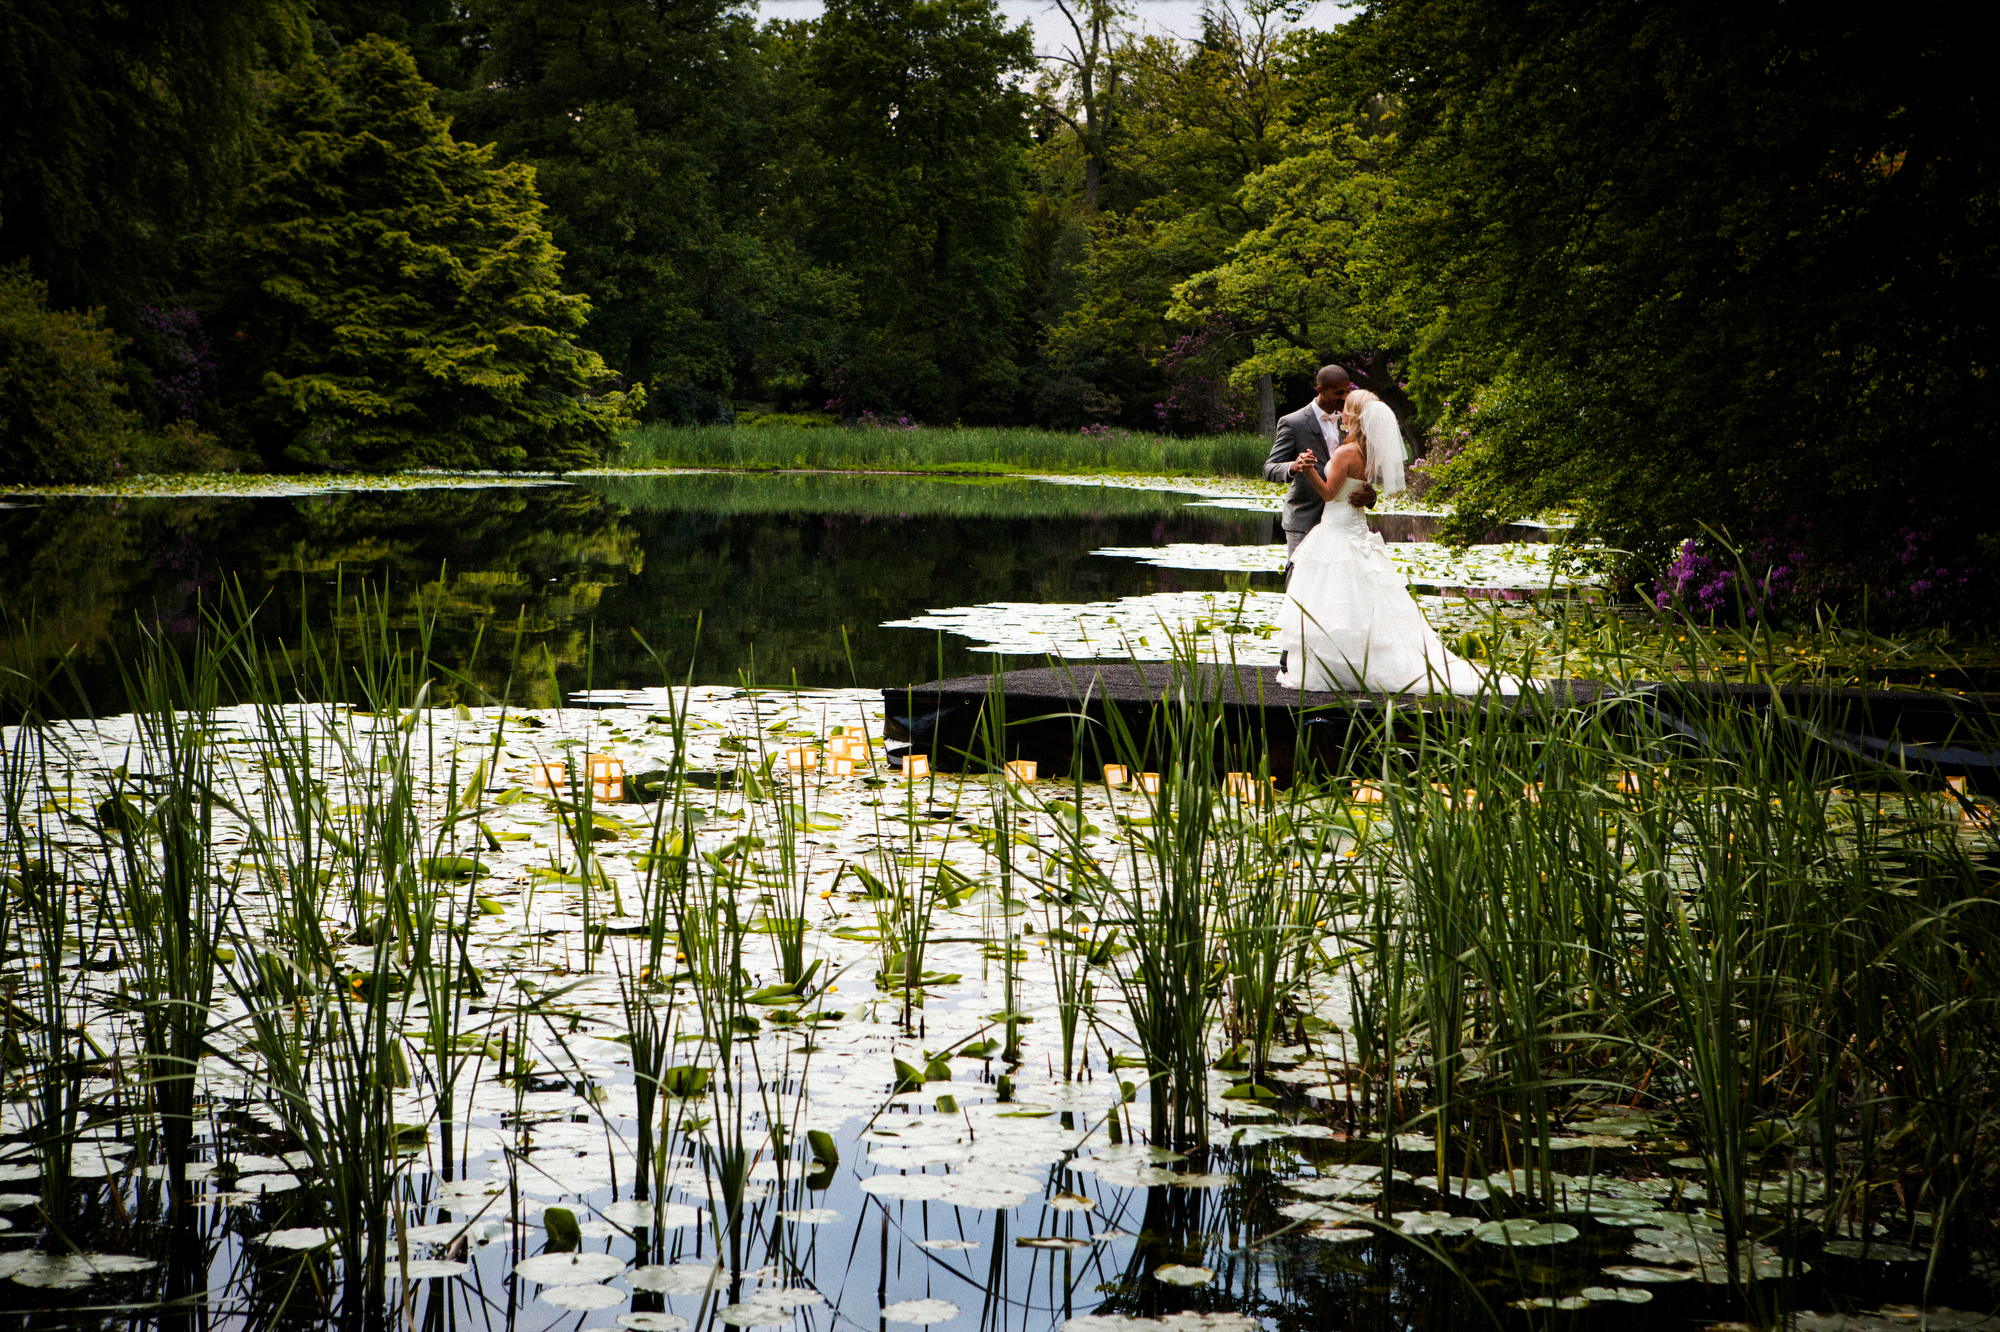 Swinton Park Hotel - Portrait of bride and groom at Home Lake - photo by Jeff Ascough